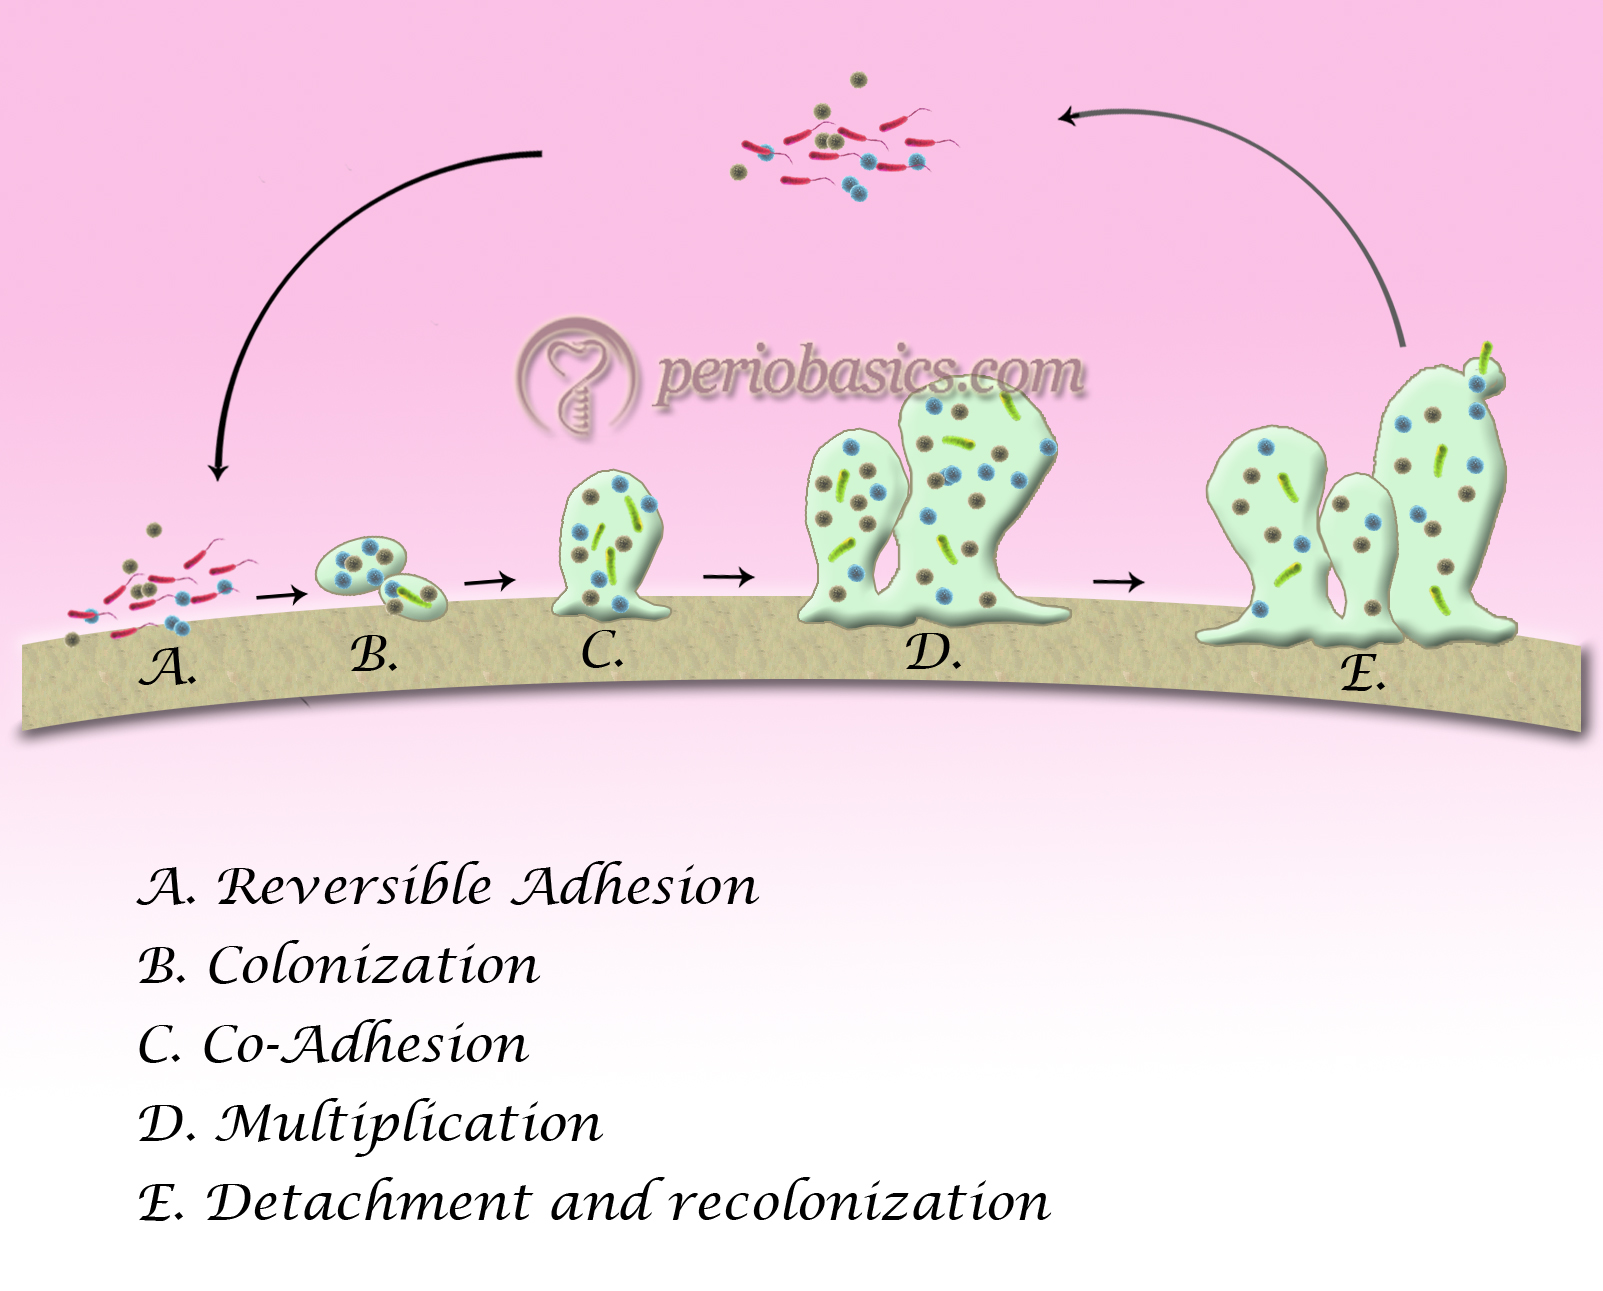 Various steps in biofilm formation starting with reversible adhesion followed by colonization, co-adhesion, multiplication and finally detachment and re-colonization